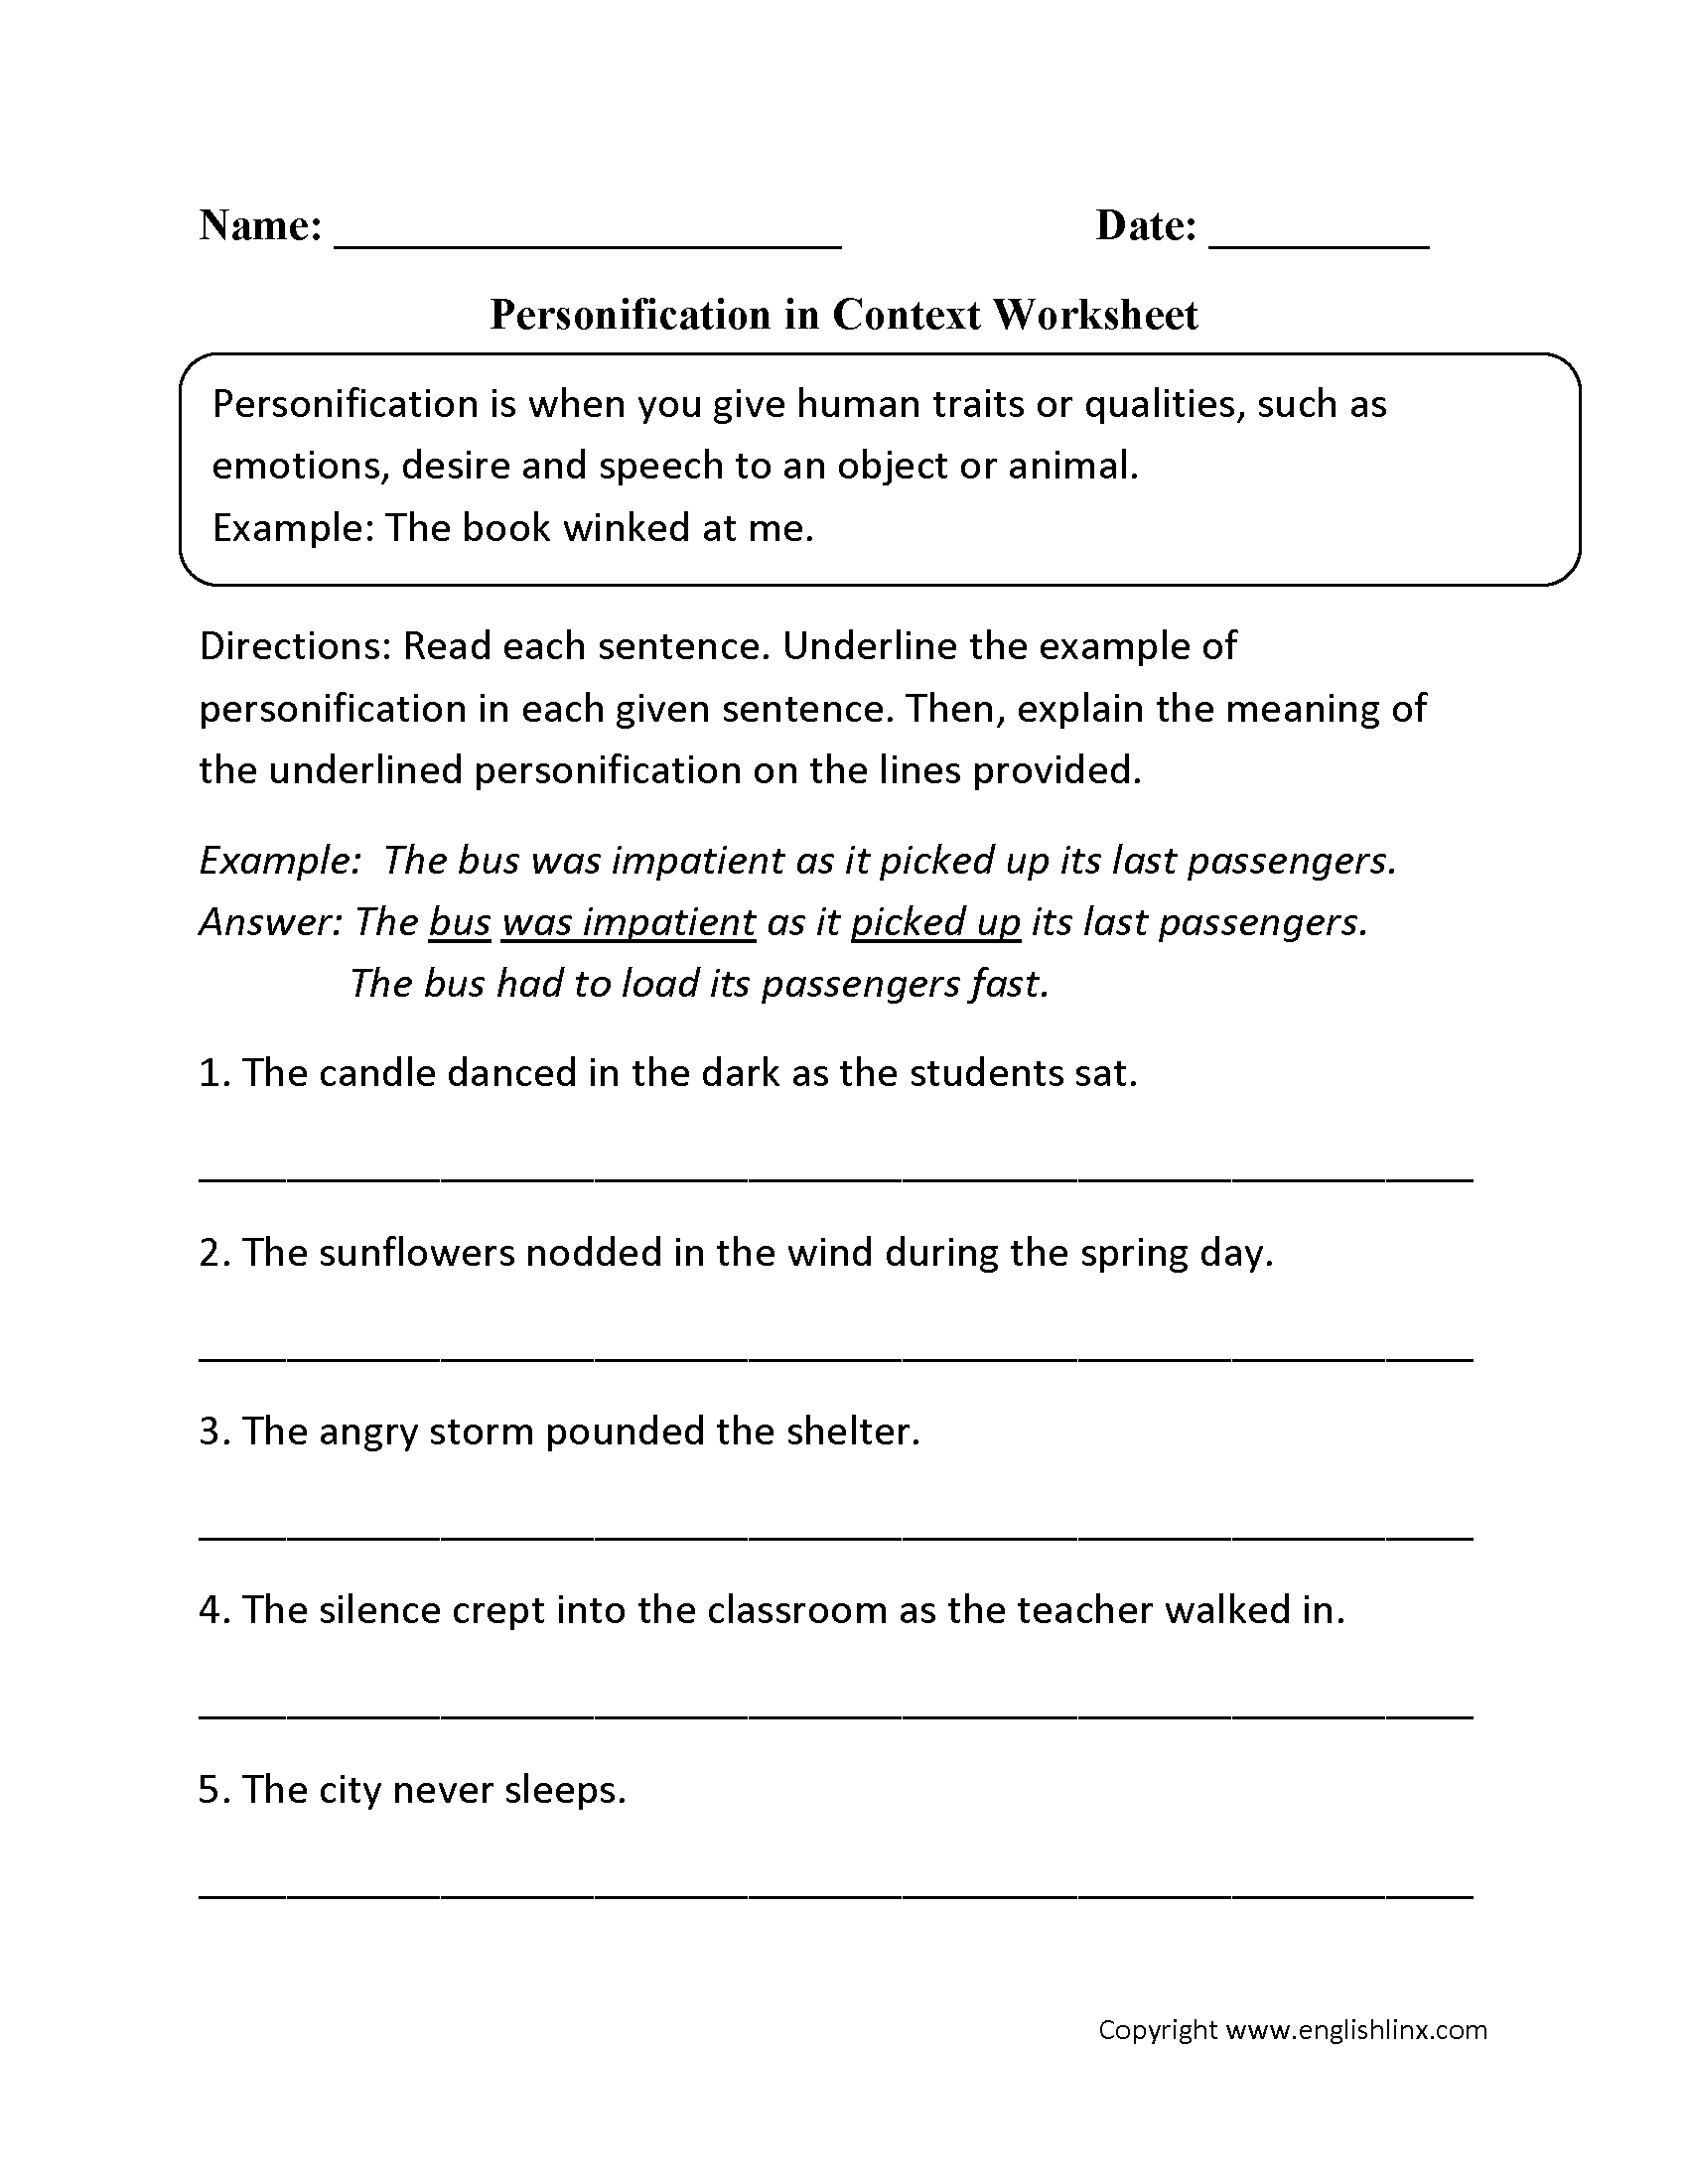 simile metaphor personification hyperbole worksheet  17 best images about figurative language context